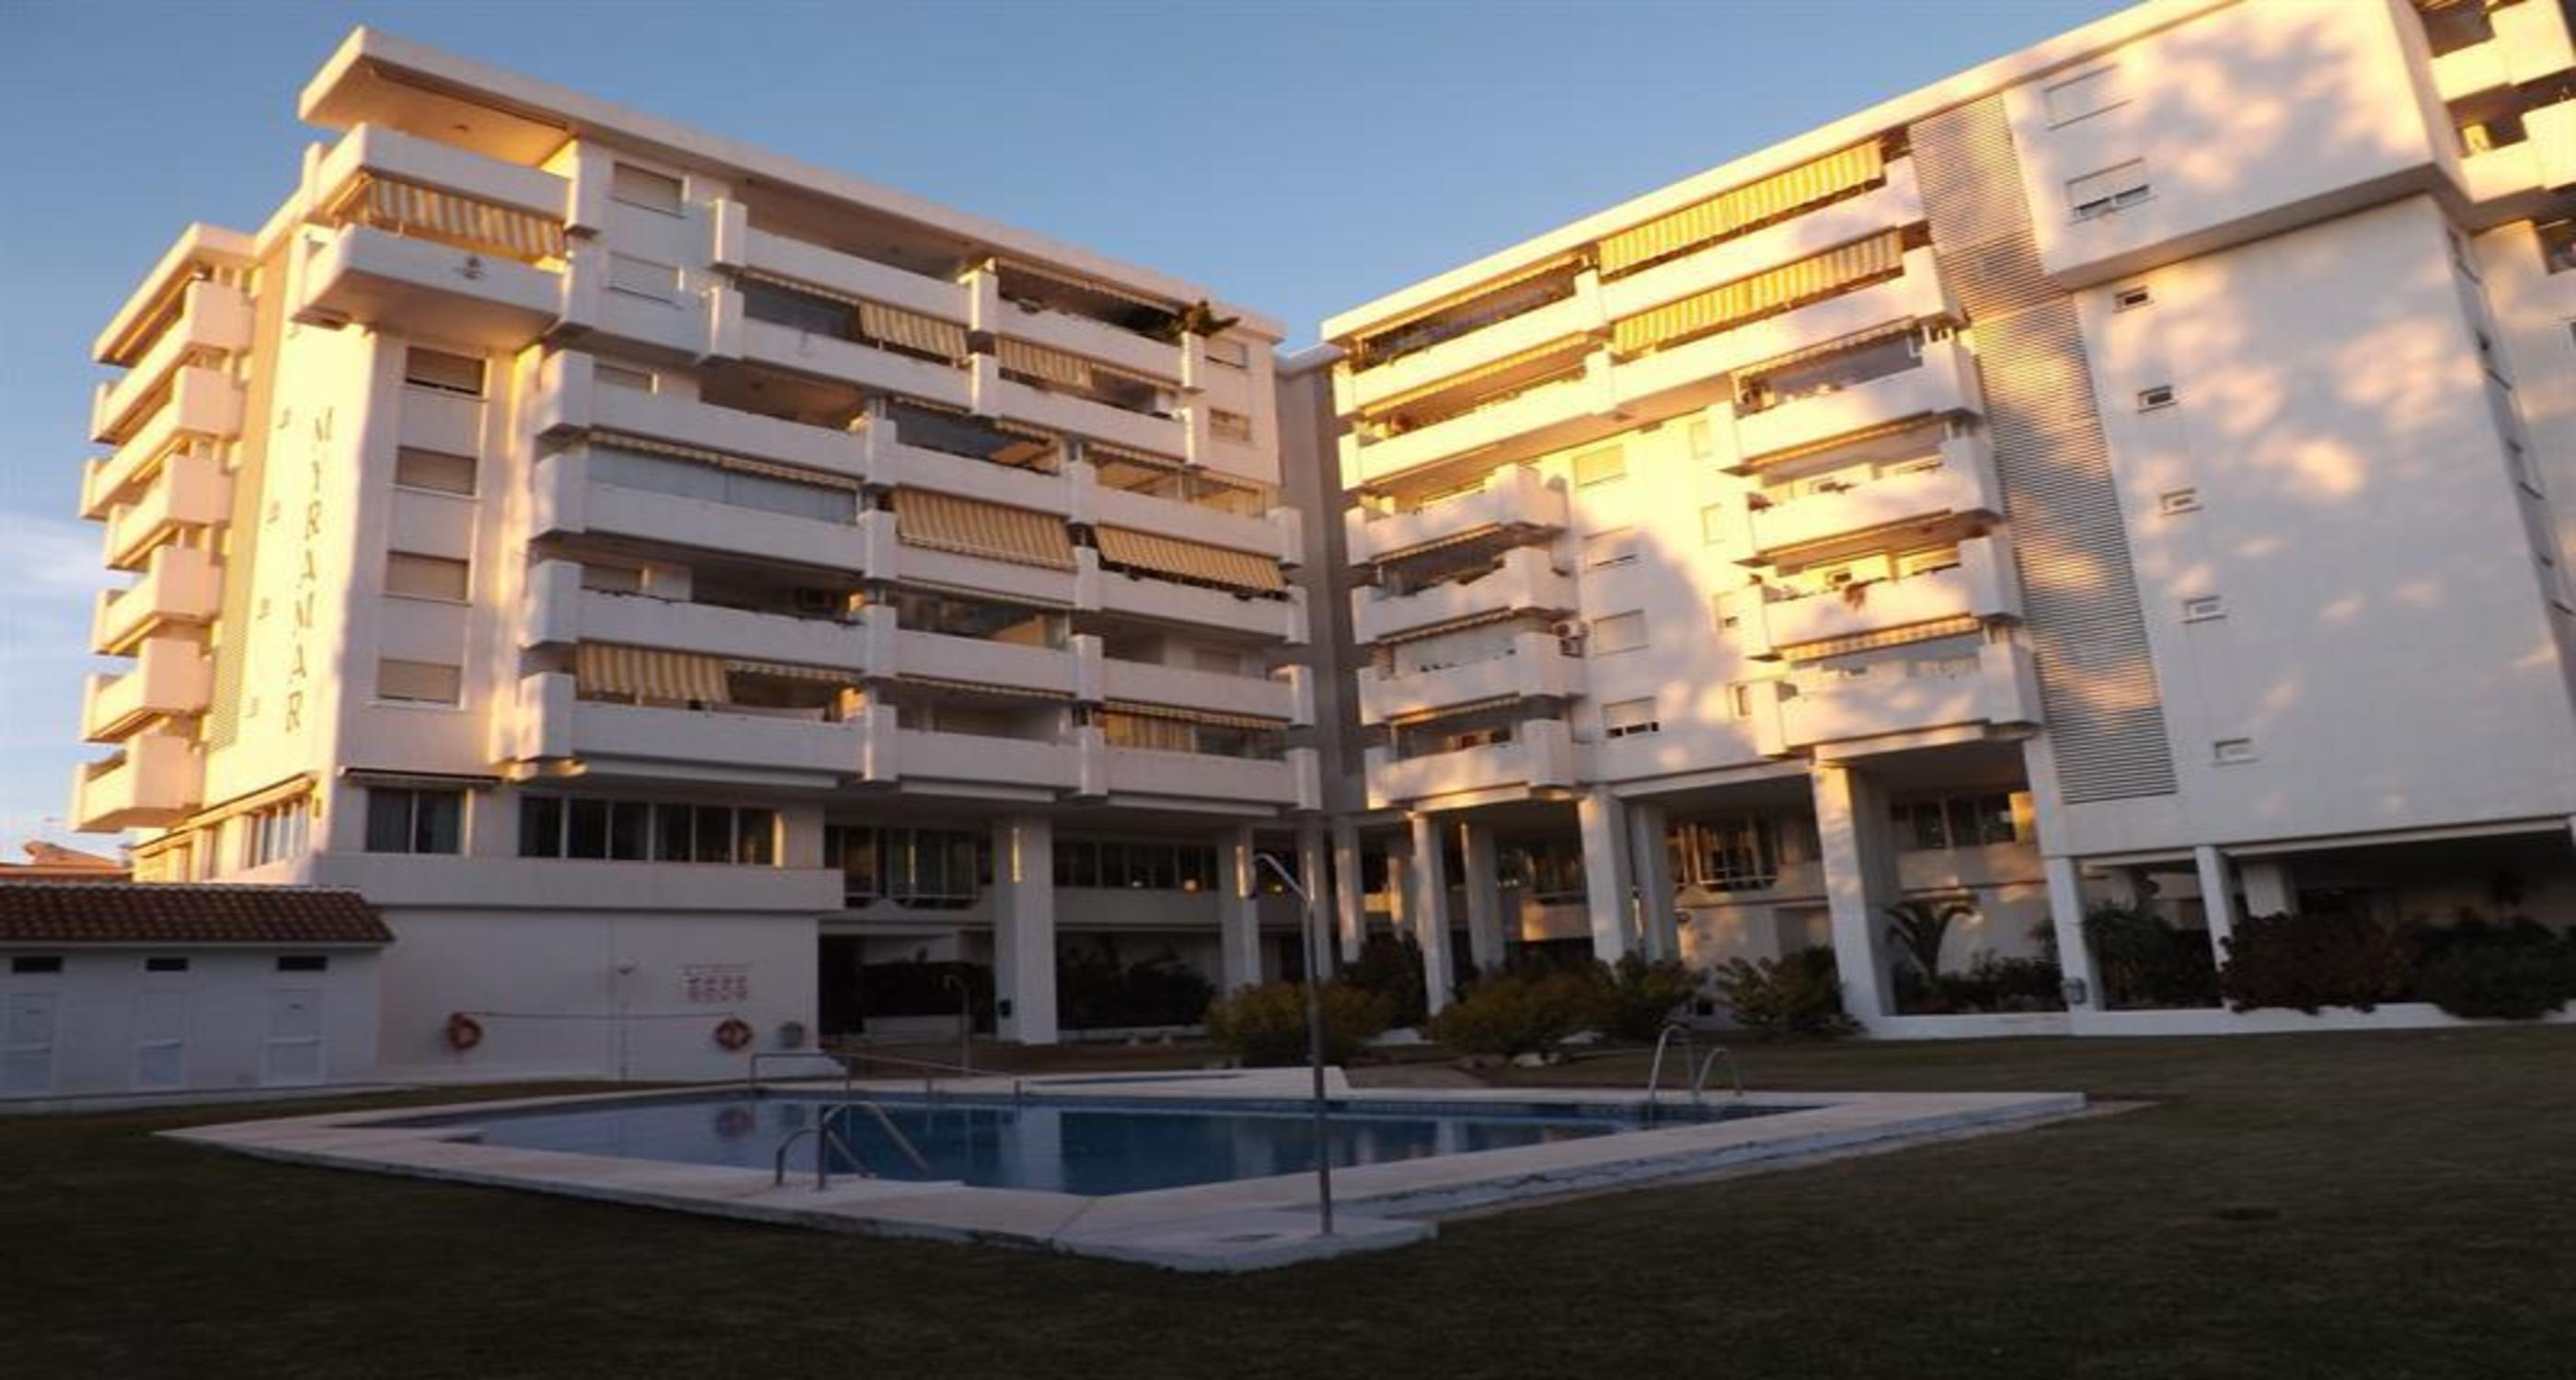 Ferienwohnung Apartment - 2 Bedrooms with Pool and WiFi - 104229 (2140293), Fuengirola, Costa del Sol, Andalusien, Spanien, Bild 10